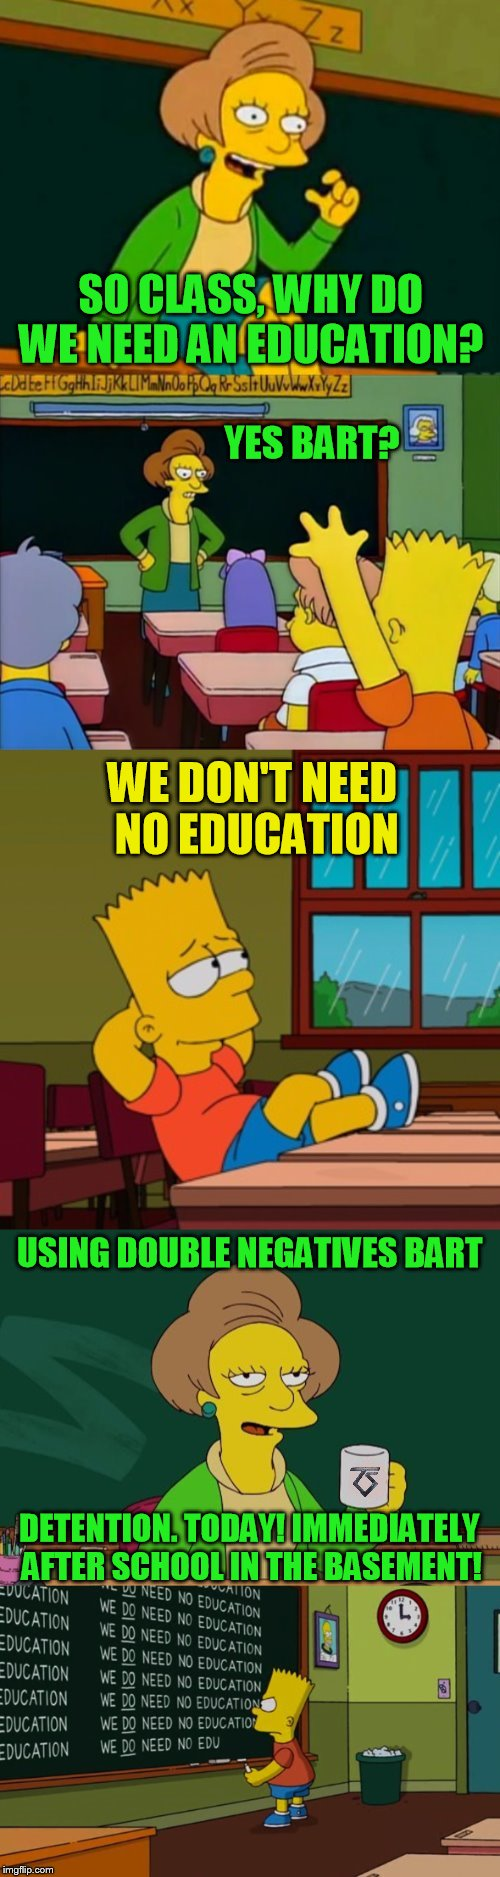 The Simpsons week (March 11th to 17th an A W_w event  ) Music Week! March 5-11, A Phantasmemegoric & thecoffeemaster Event | SO CLASS, WHY DO WE NEED AN EDUCATION? YES BART? WE DON'T NEED NO EDUCATION USING DOUBLE NEGATIVES BART DETENTION. TODAY! IMMEDIATELY AFTER  | image tagged in memes,the simpsons week,music week,pink floyd,twisted sister,simpsons | made w/ Imgflip meme maker